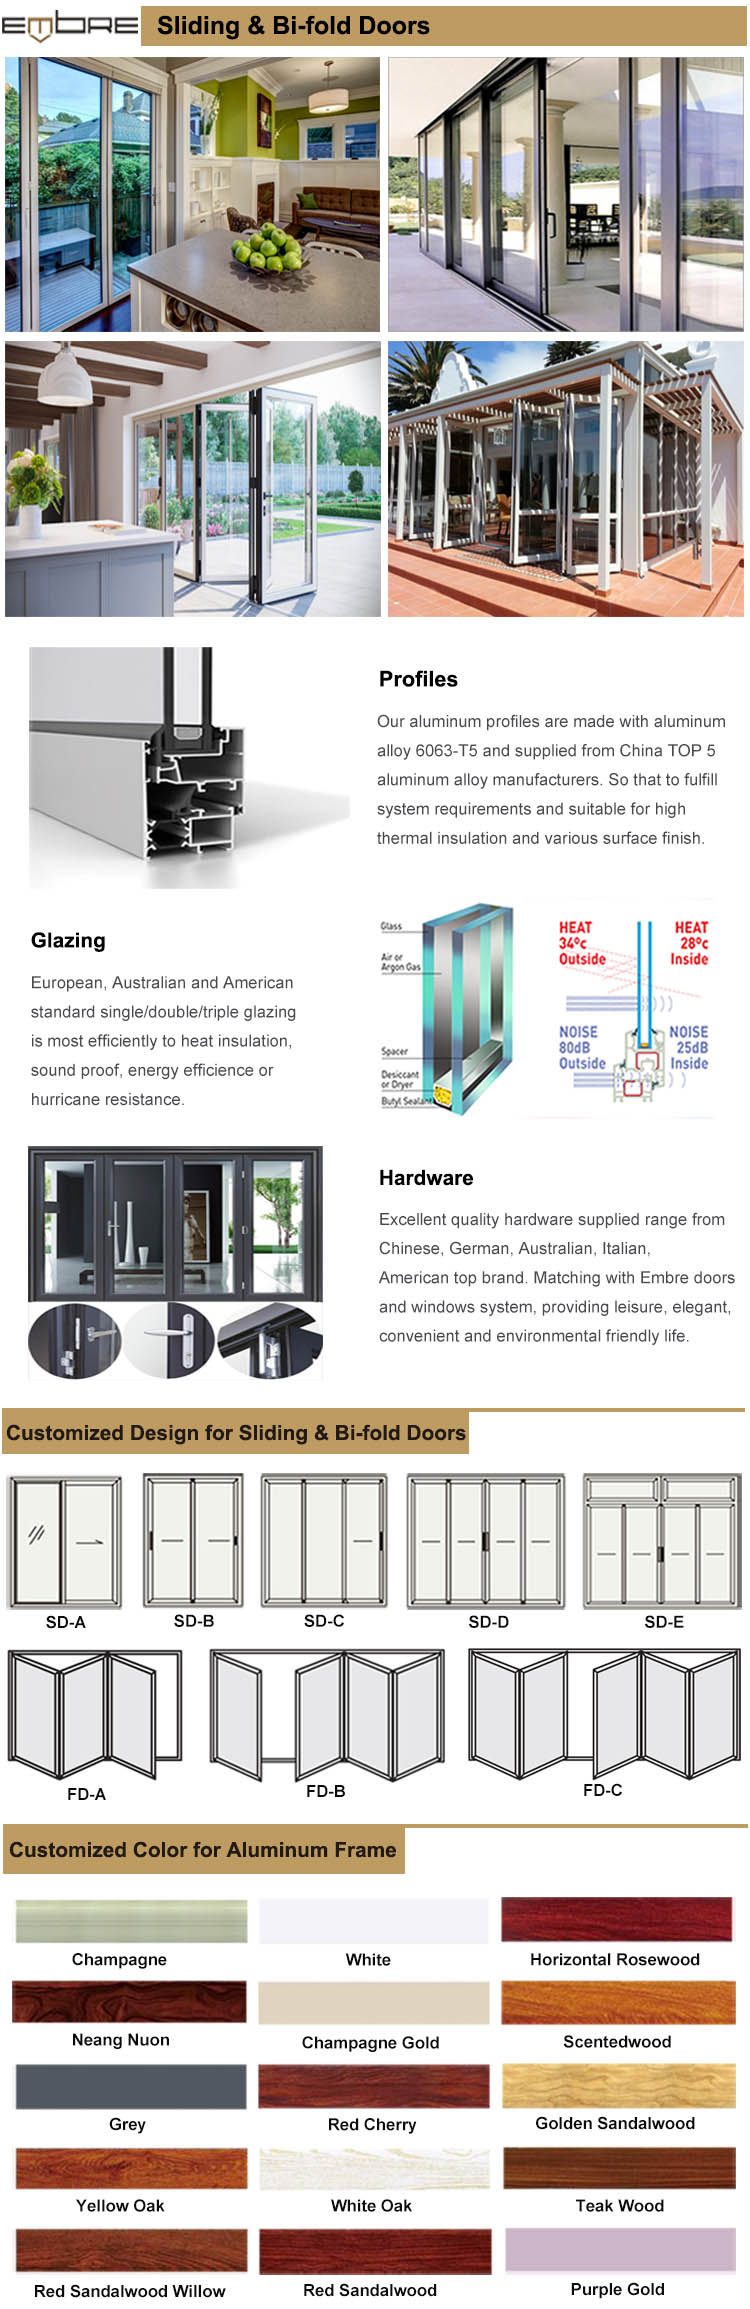 Triple Track Aluminum Sliding Door with Screen